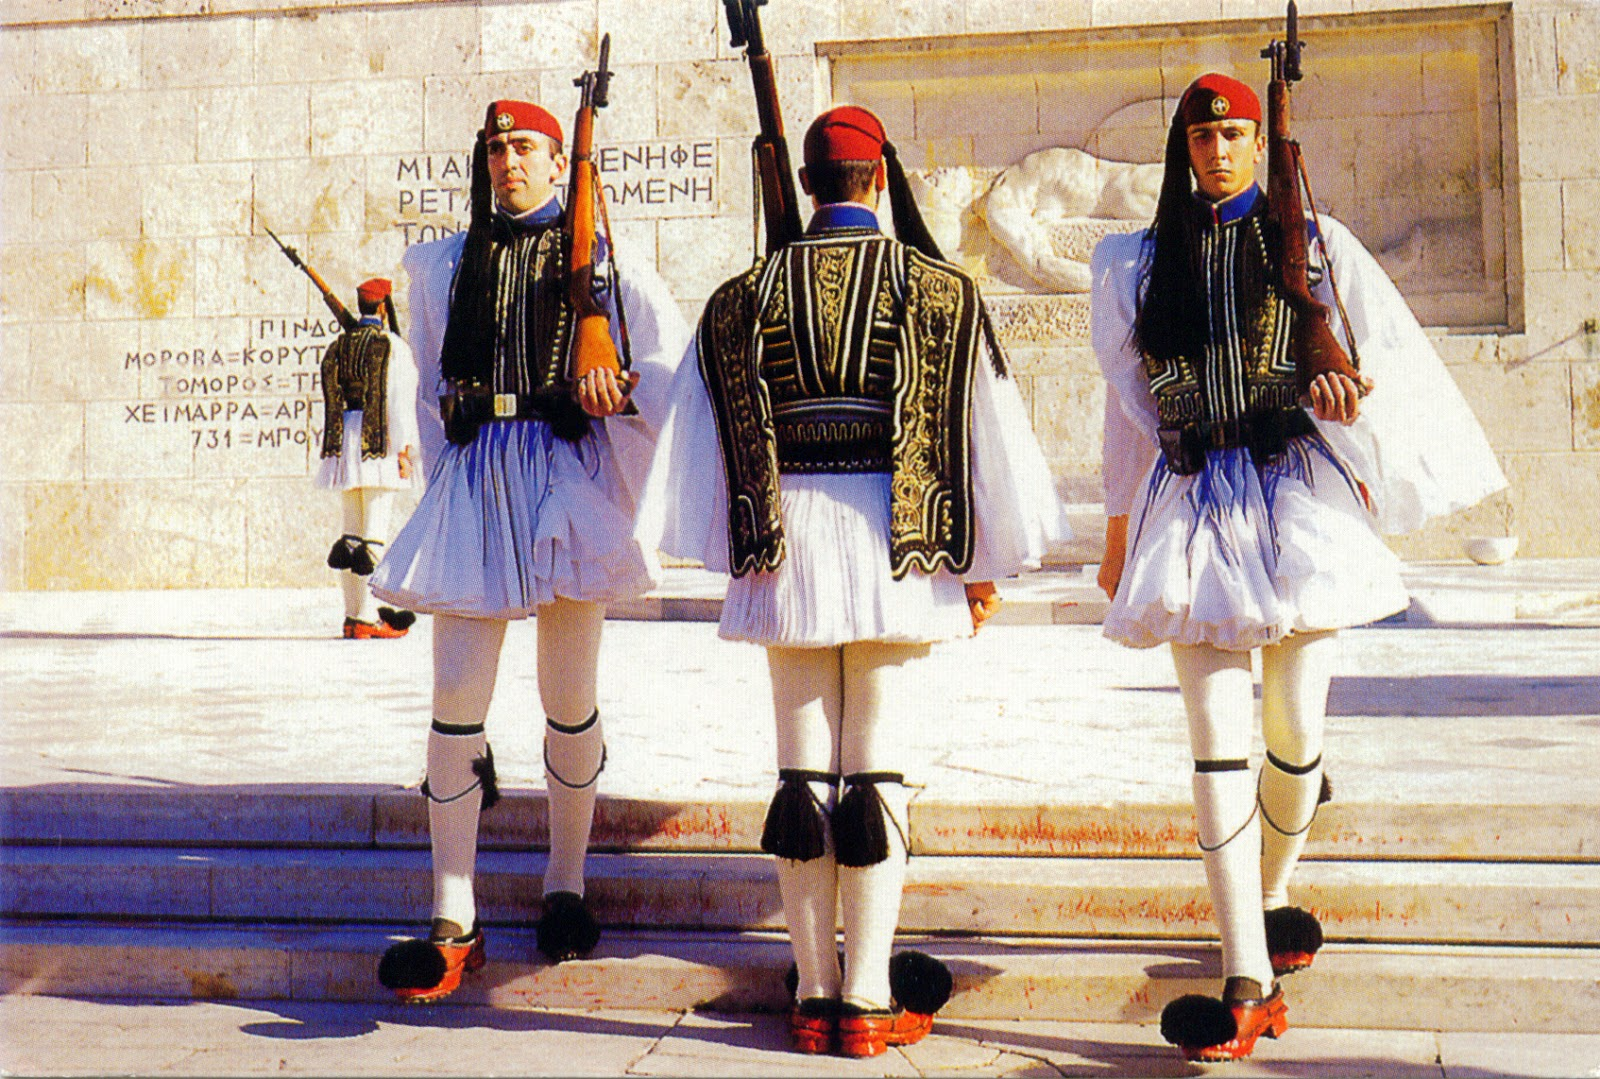 Evzones at the tomb of the unknown soldier in Athens